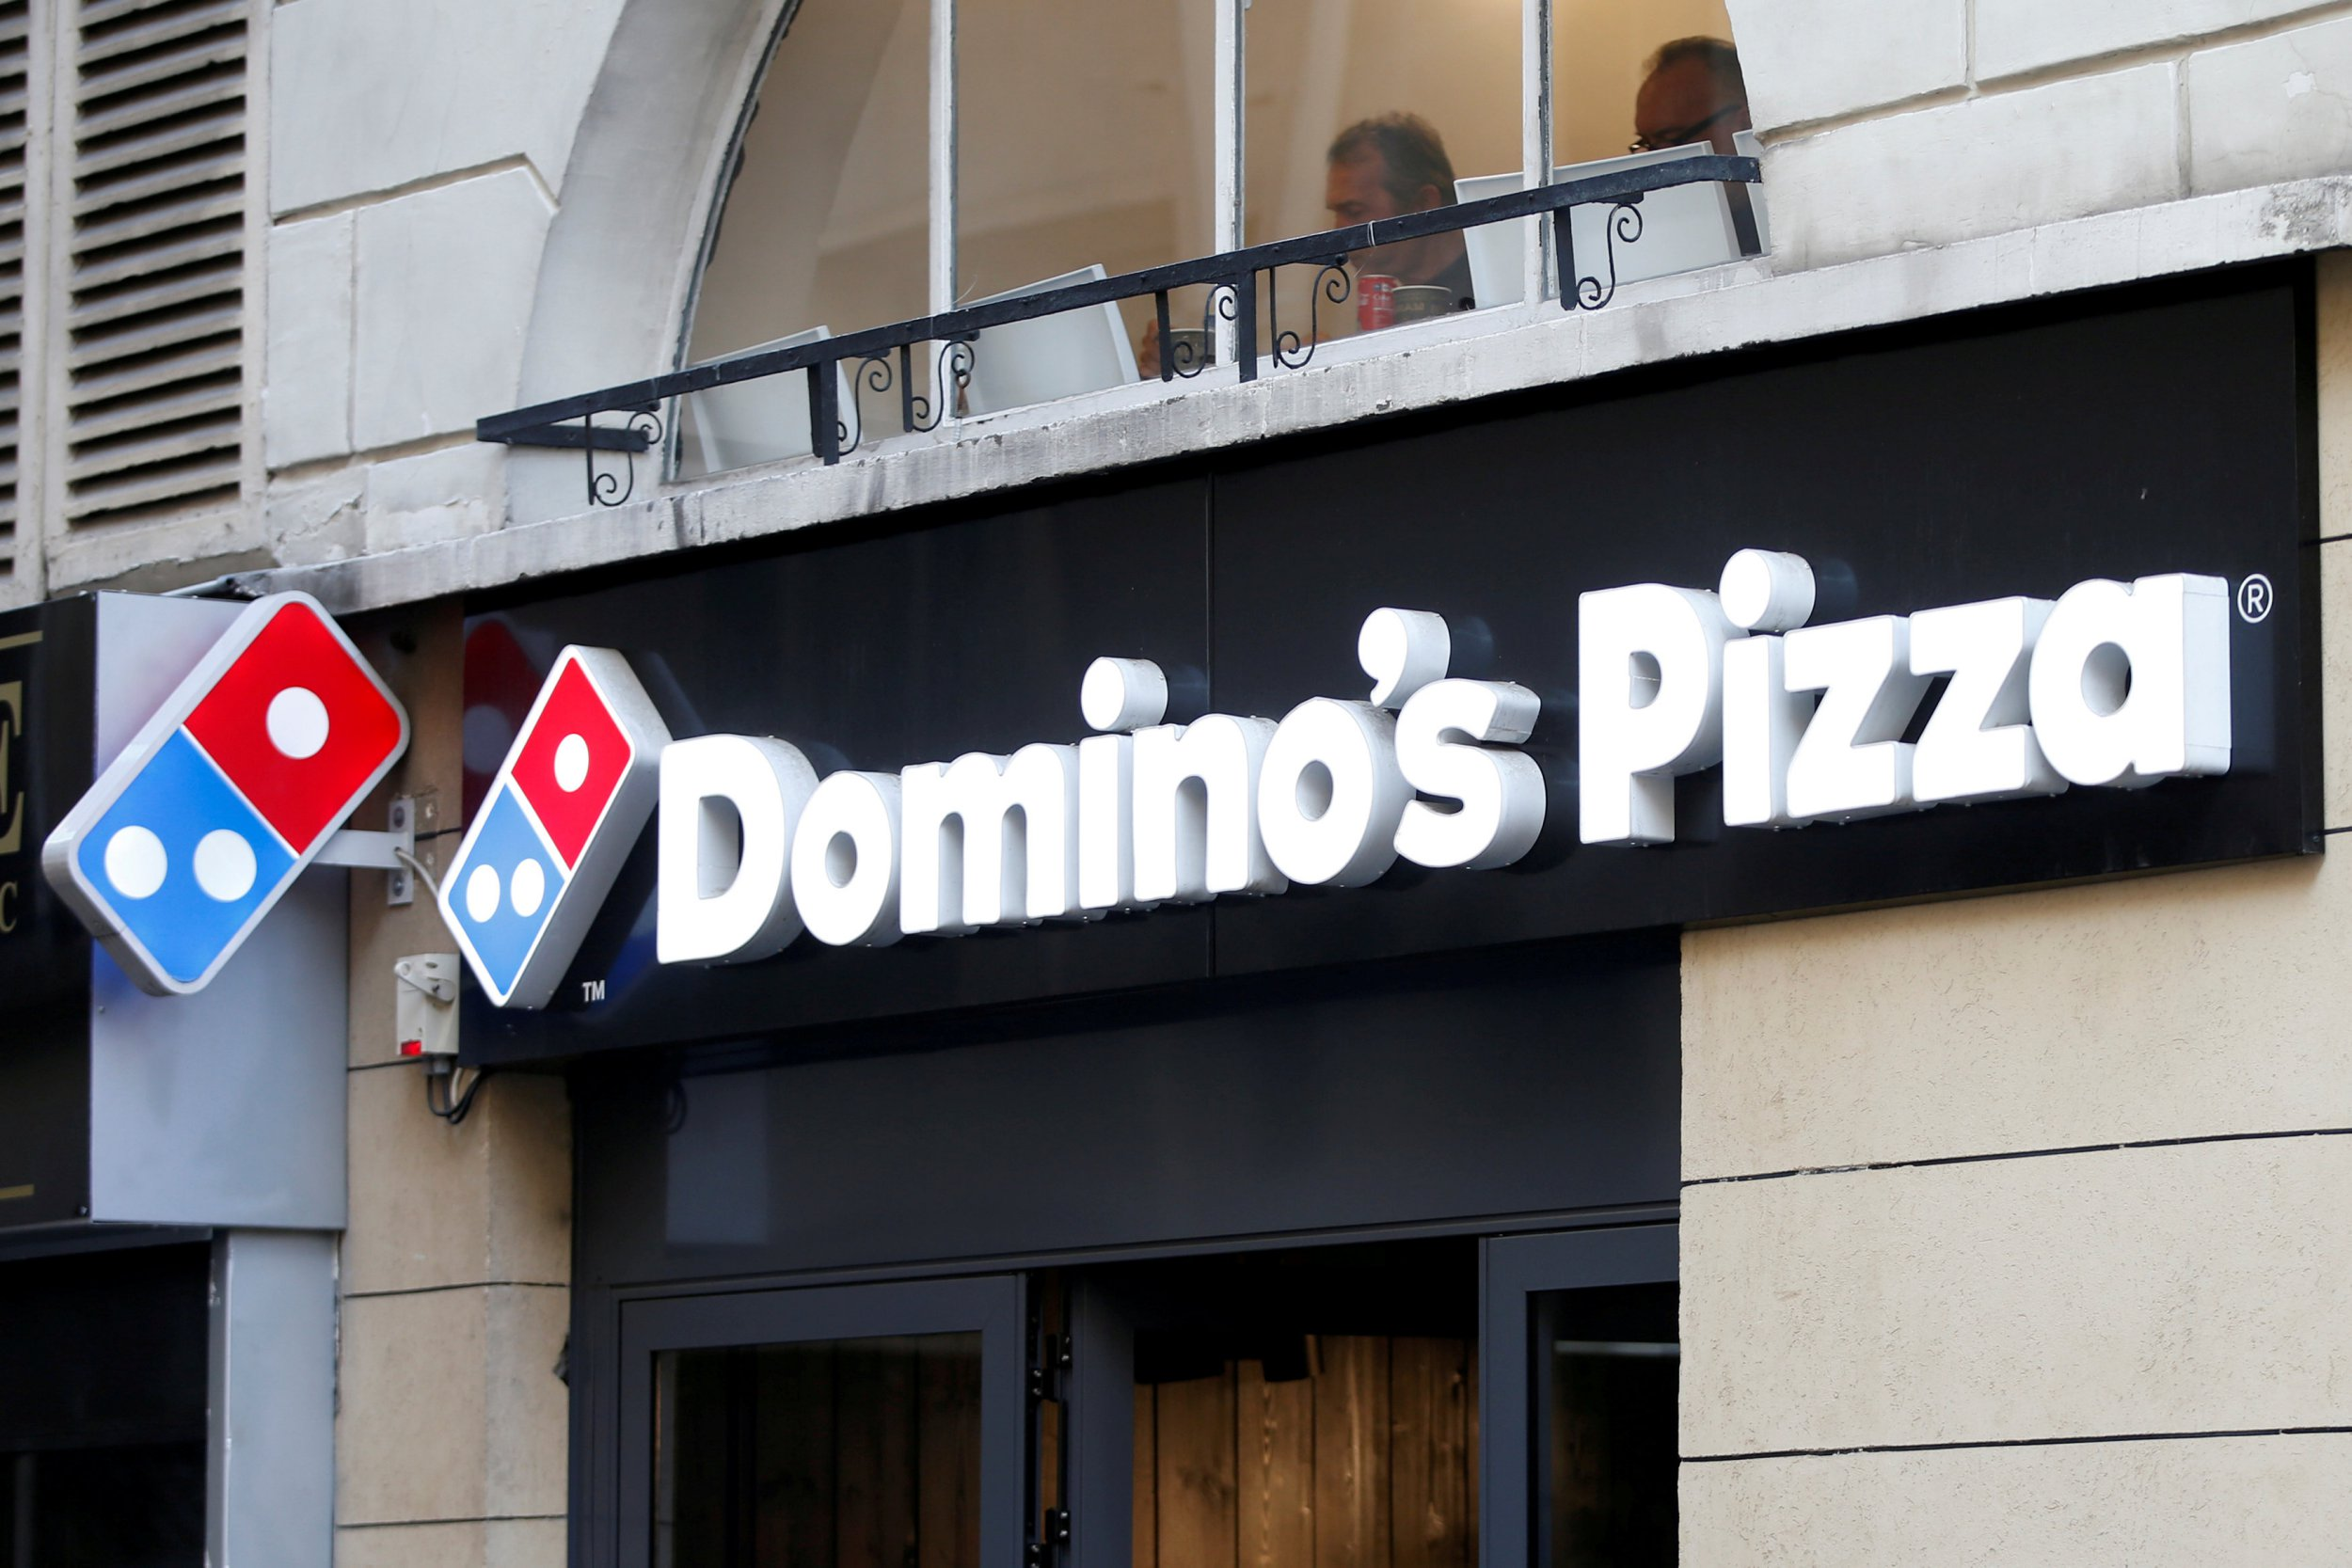 FILE PHOTO: The sign of a Domino's Pizza restaurant is seen in Paris, France, October 27, 2016. REUTERS/Charles Platiau/File Photo GLOBAL BUSINESS WEEK AHEAD SEARCH GLOBAL BUSINESS FOR ALL IMAGES?